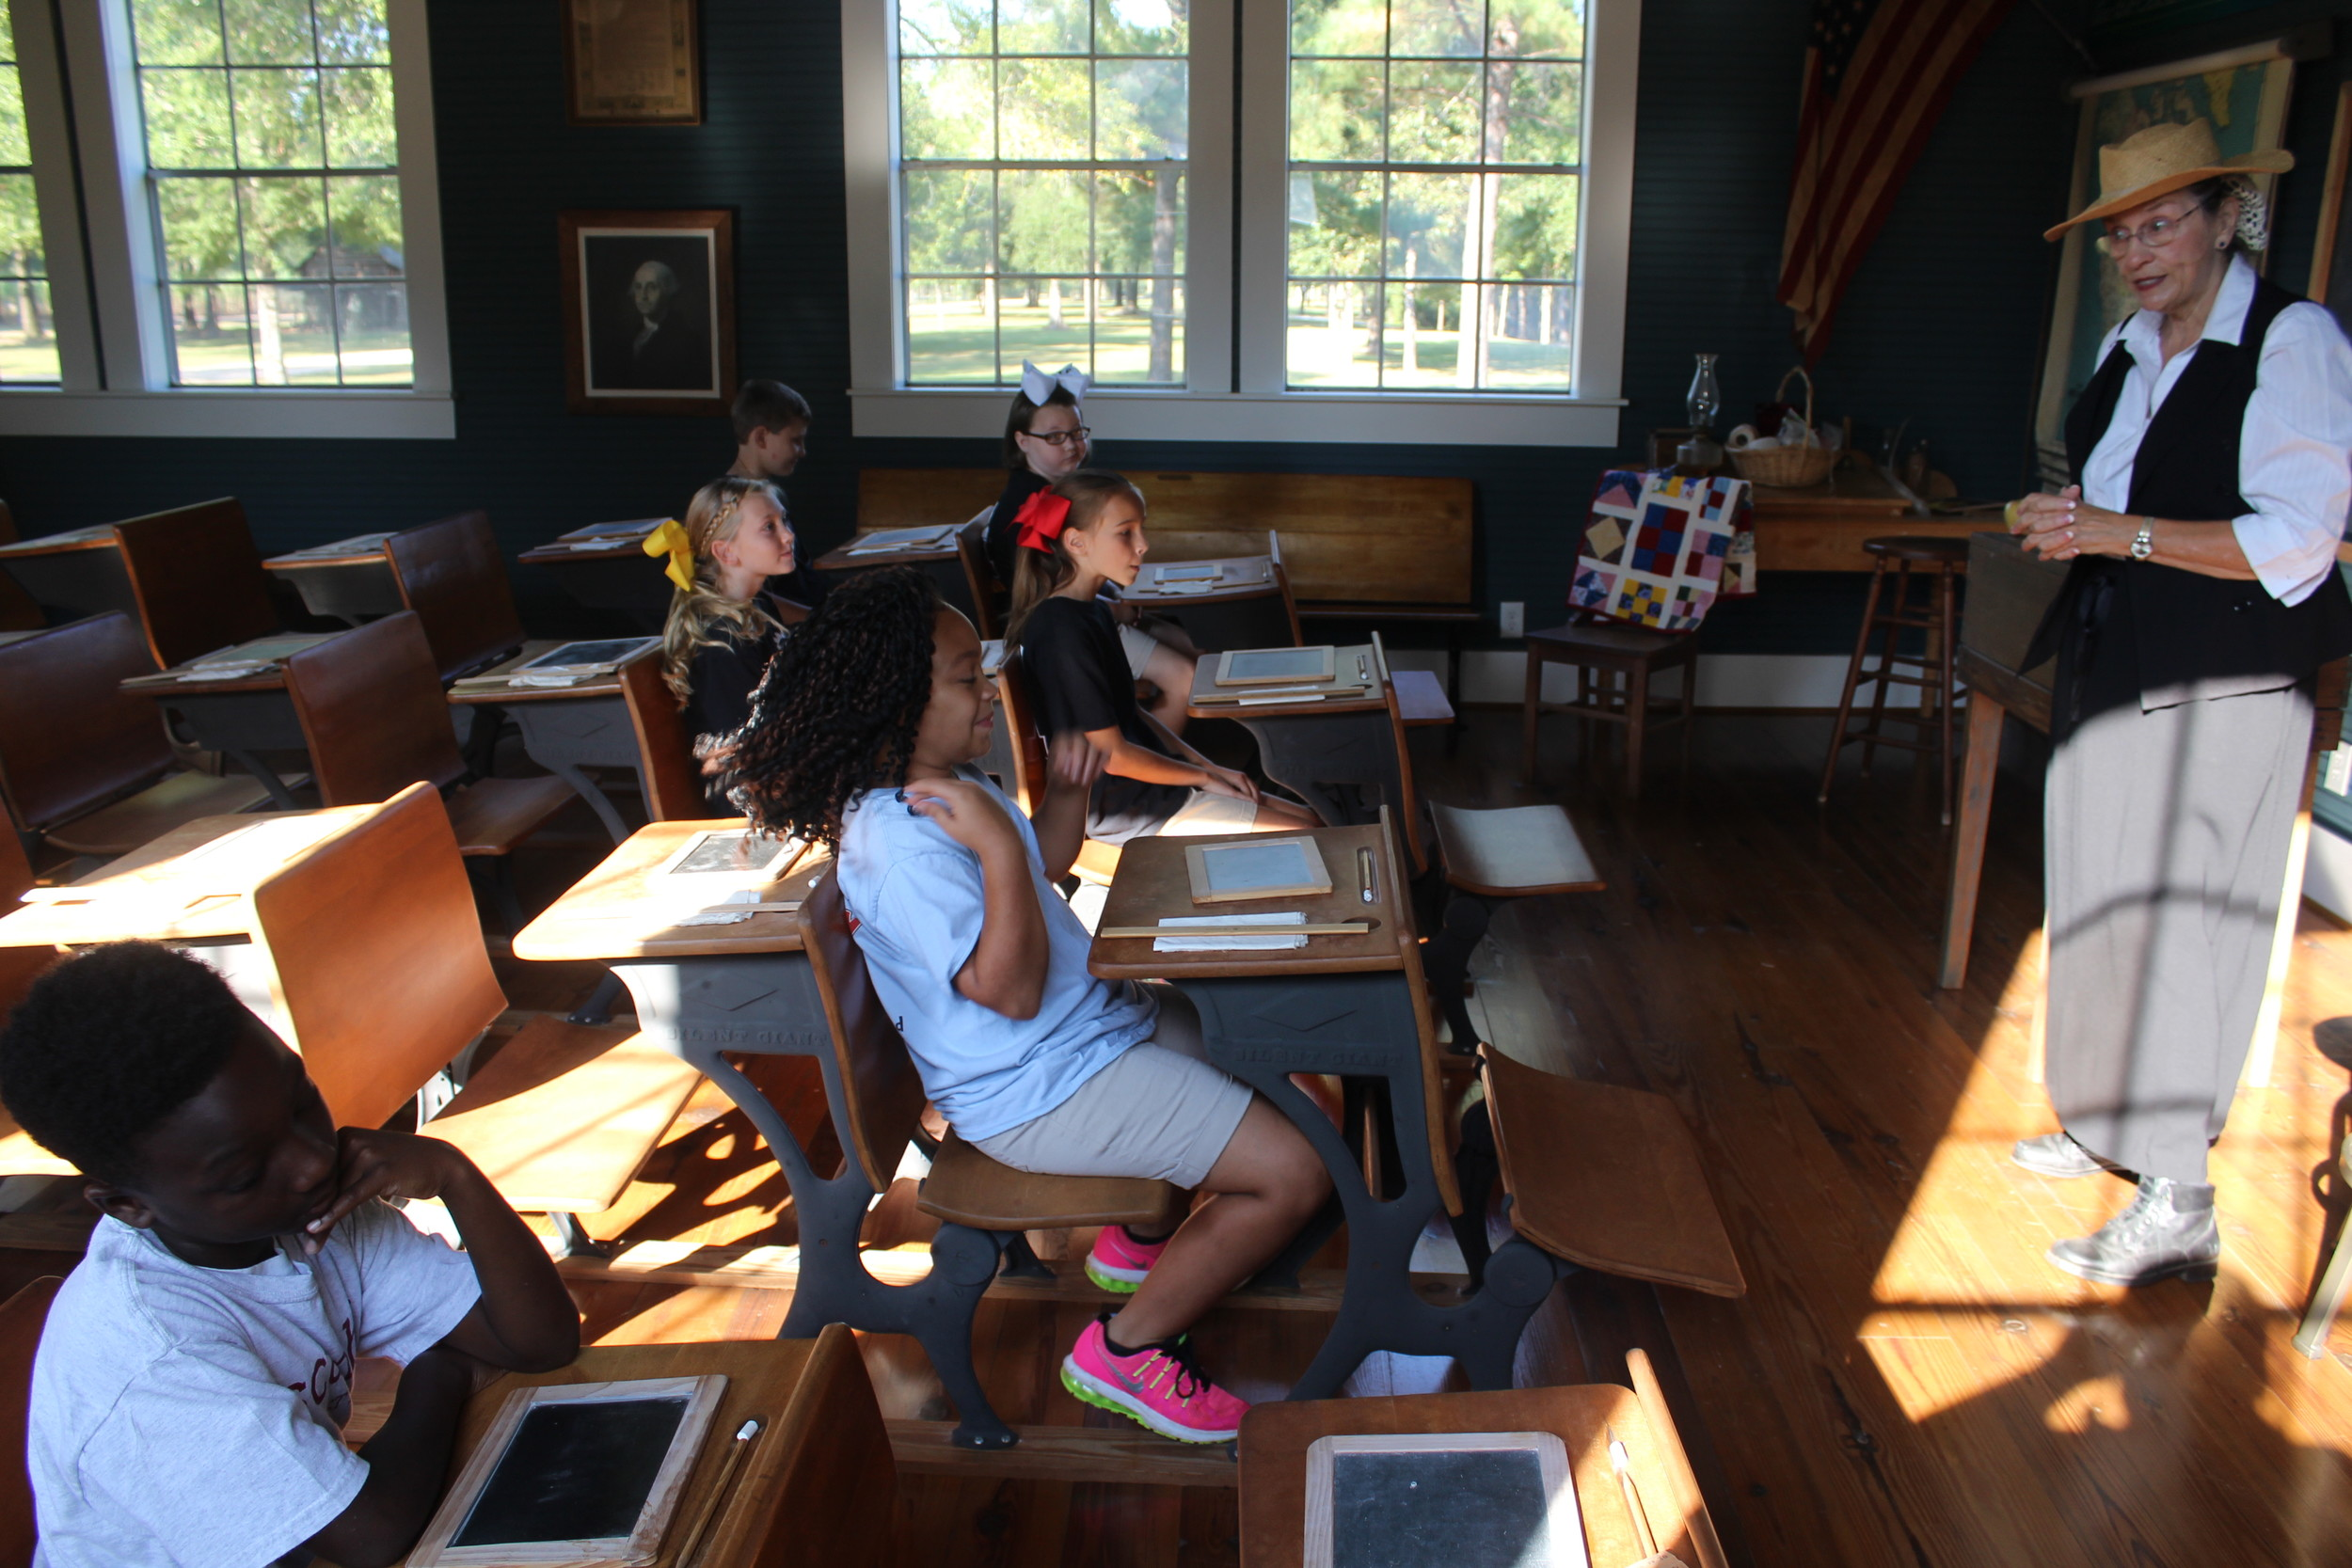 Volunteer Harriet Outlaw, known as Teacher, helps instruct her students in how school was taught in the Little Red Schoolhouse back in 1919.